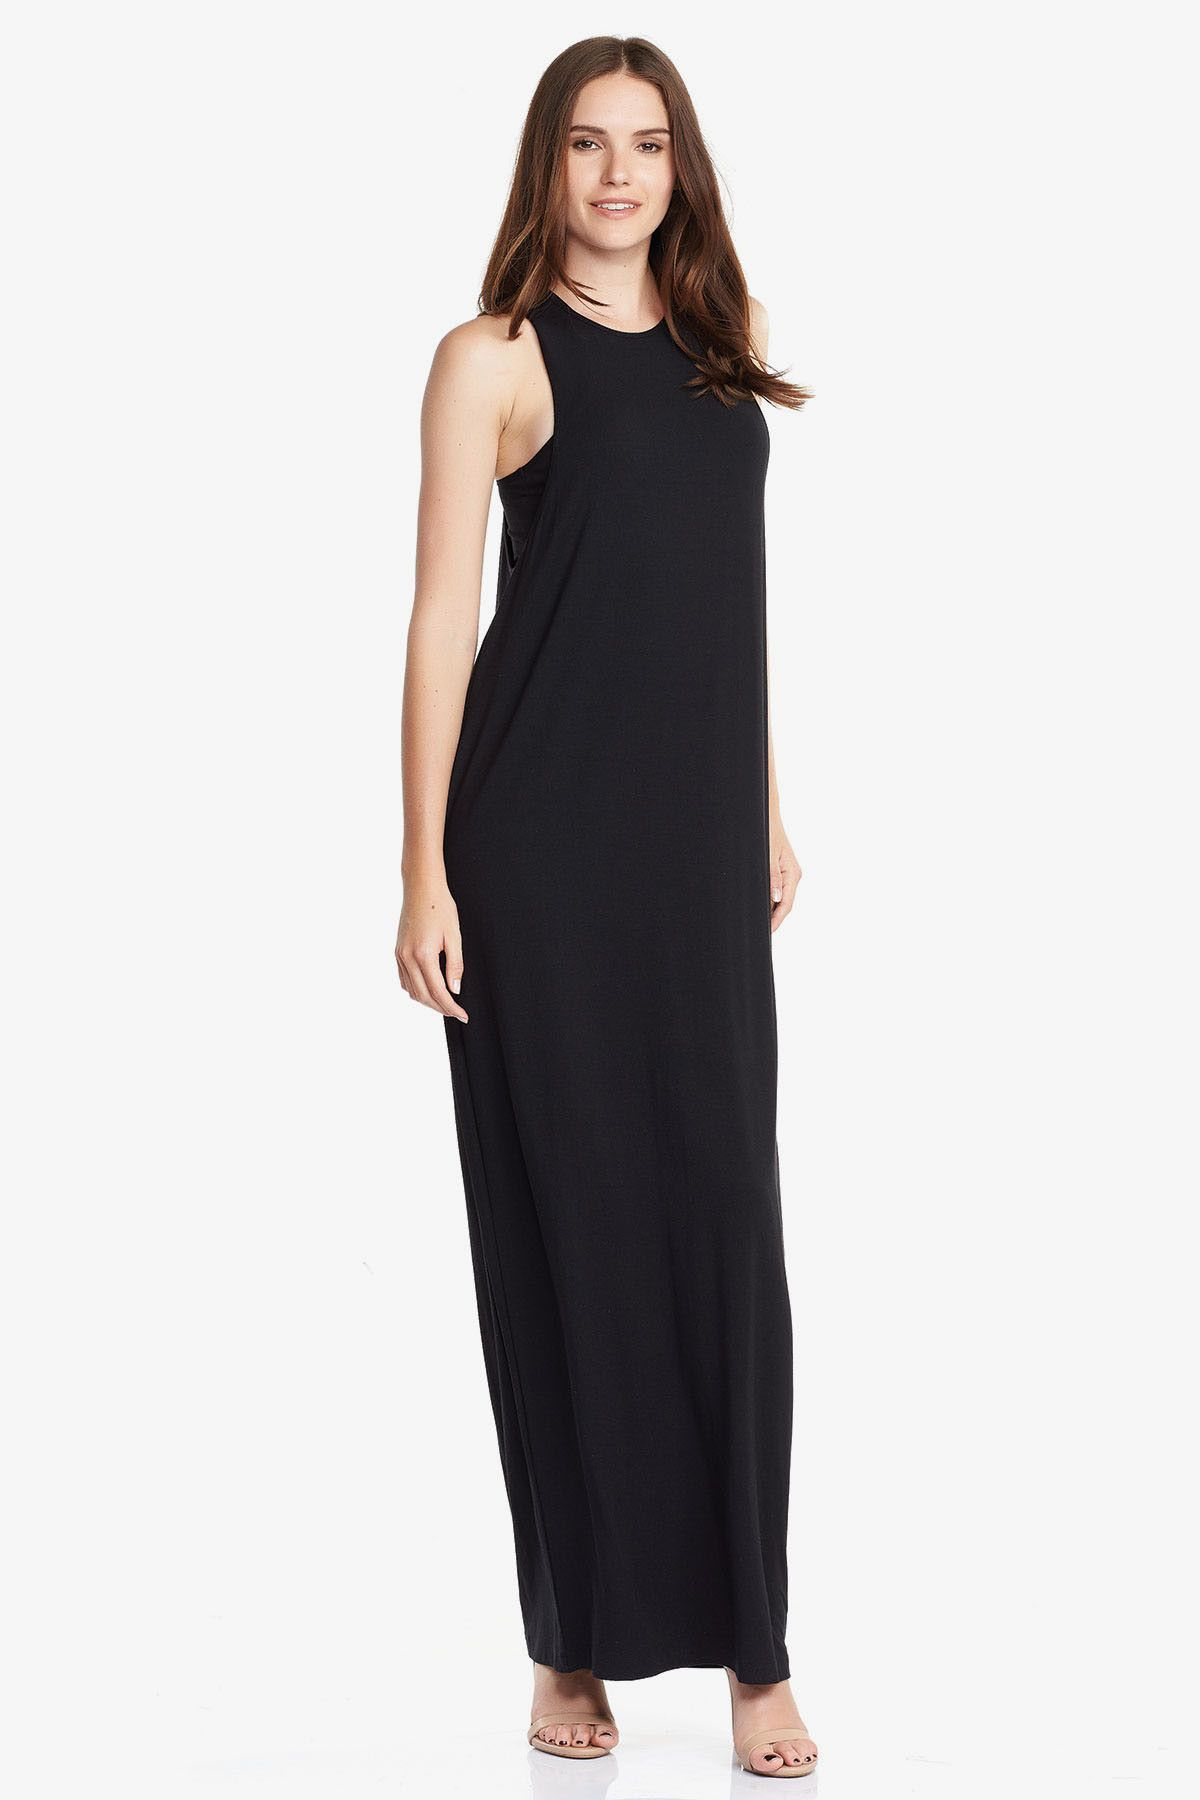 Marisole maxi in black products pinterest products